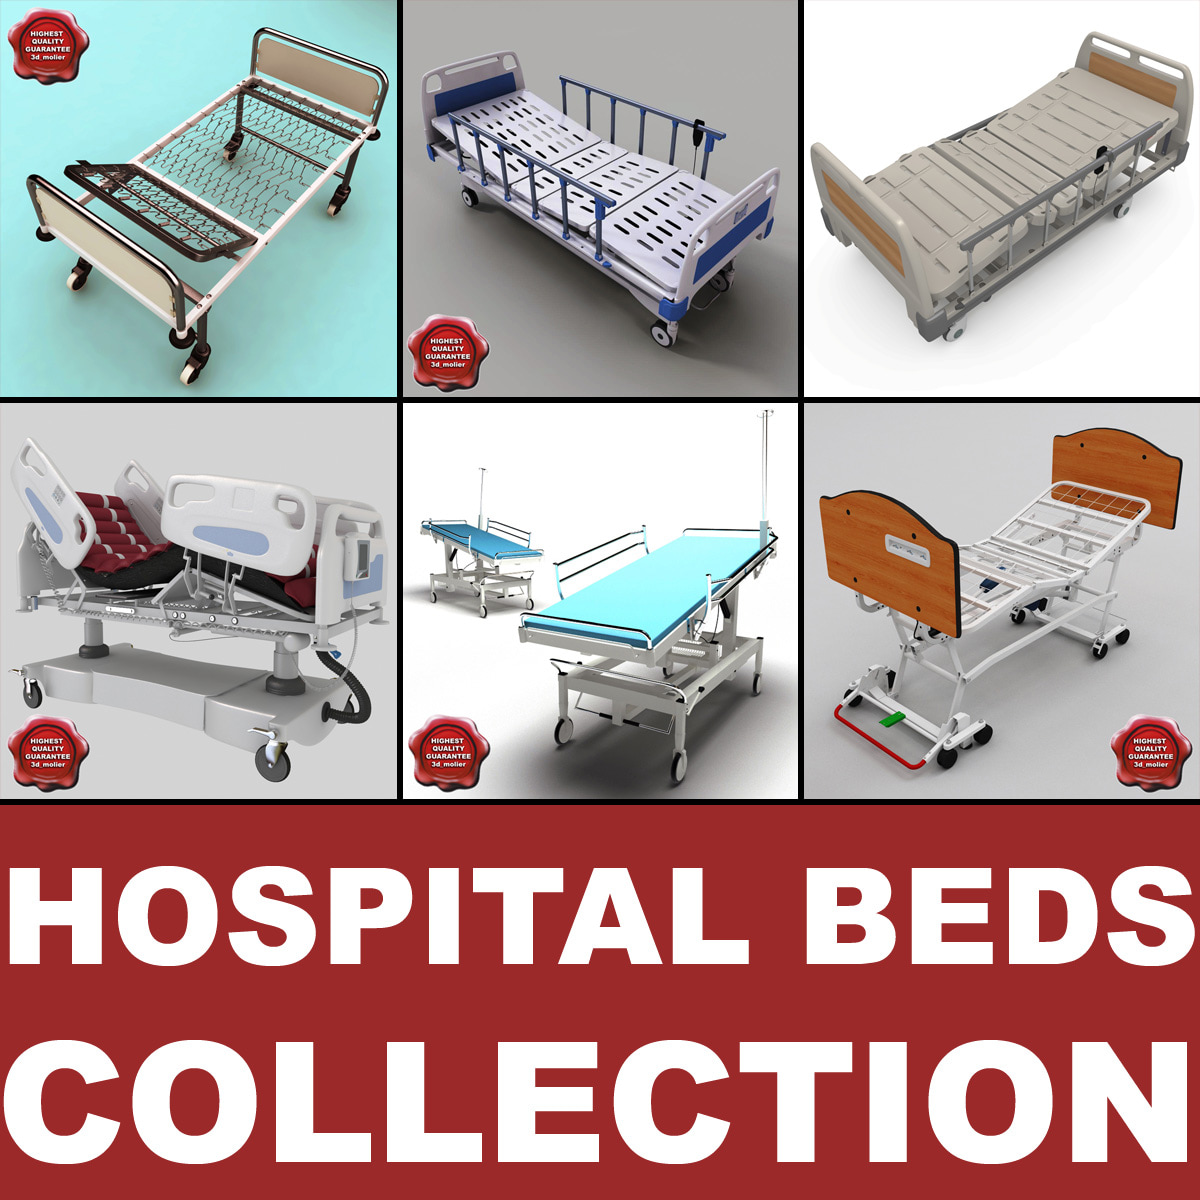 Hospital_Beds_Collection_V3_000.jpg